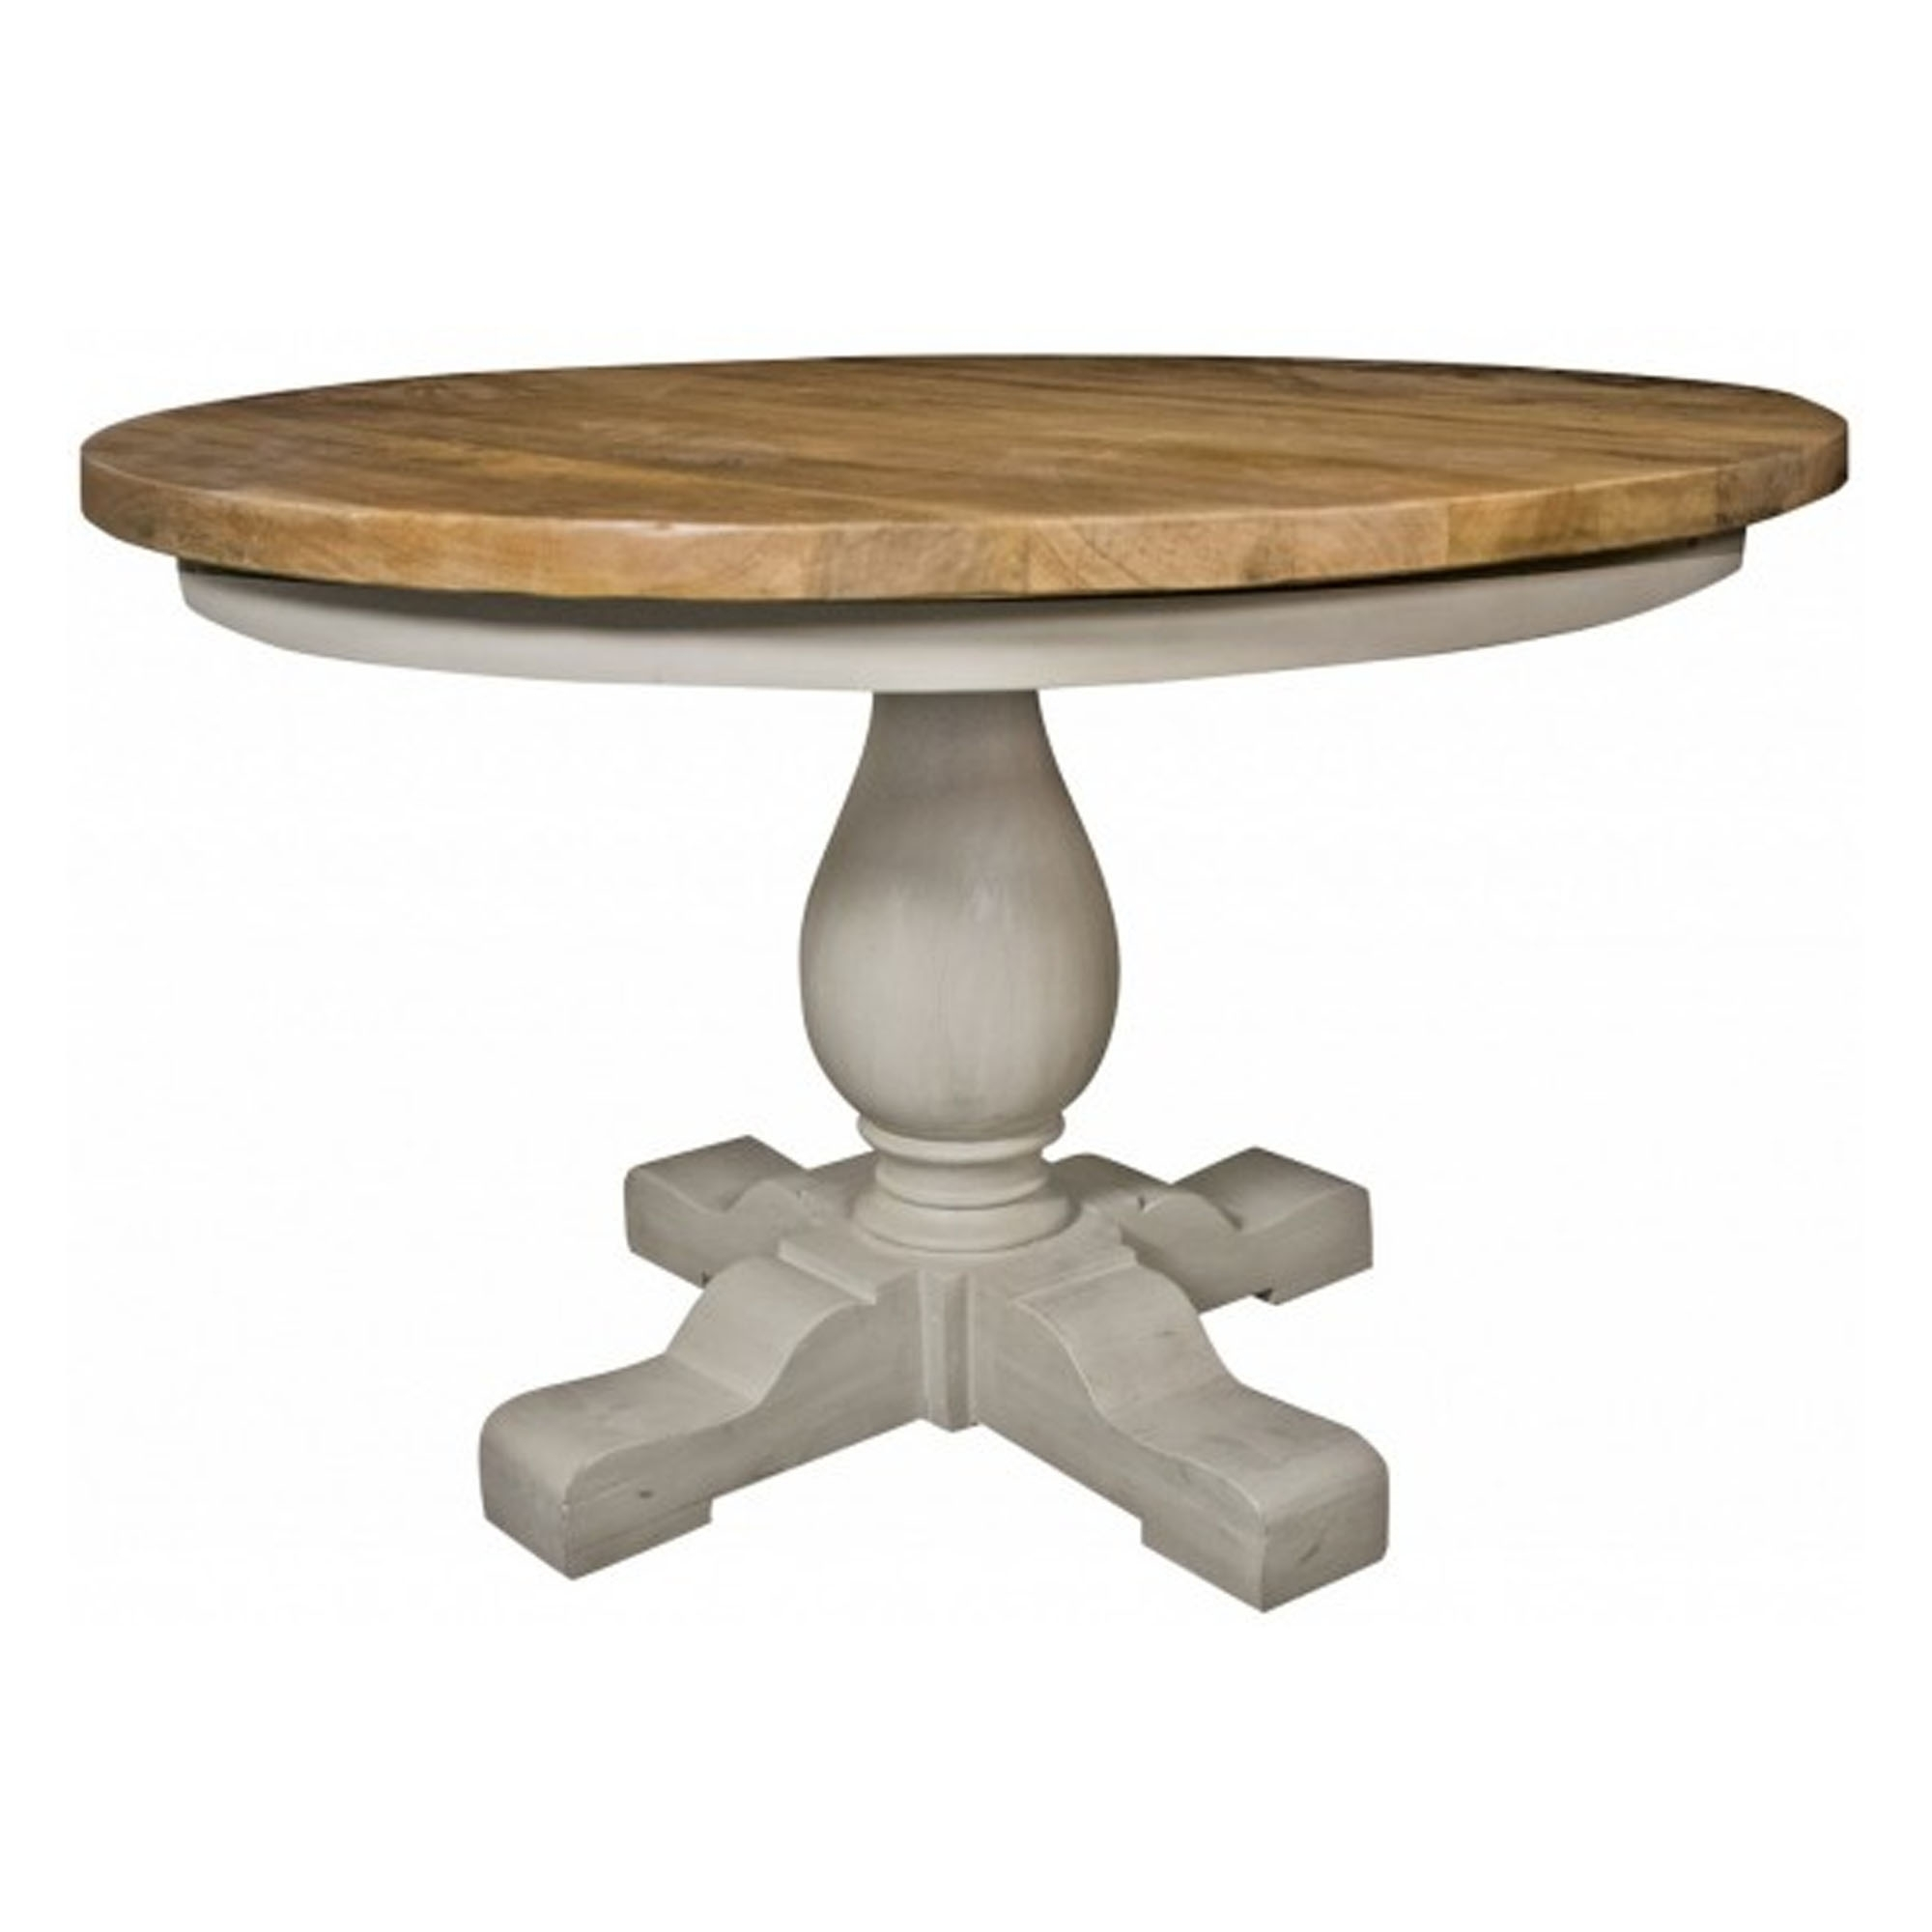 Shabby Chic Dining Room Table: Colorado Round Shabby Chic Dining Table